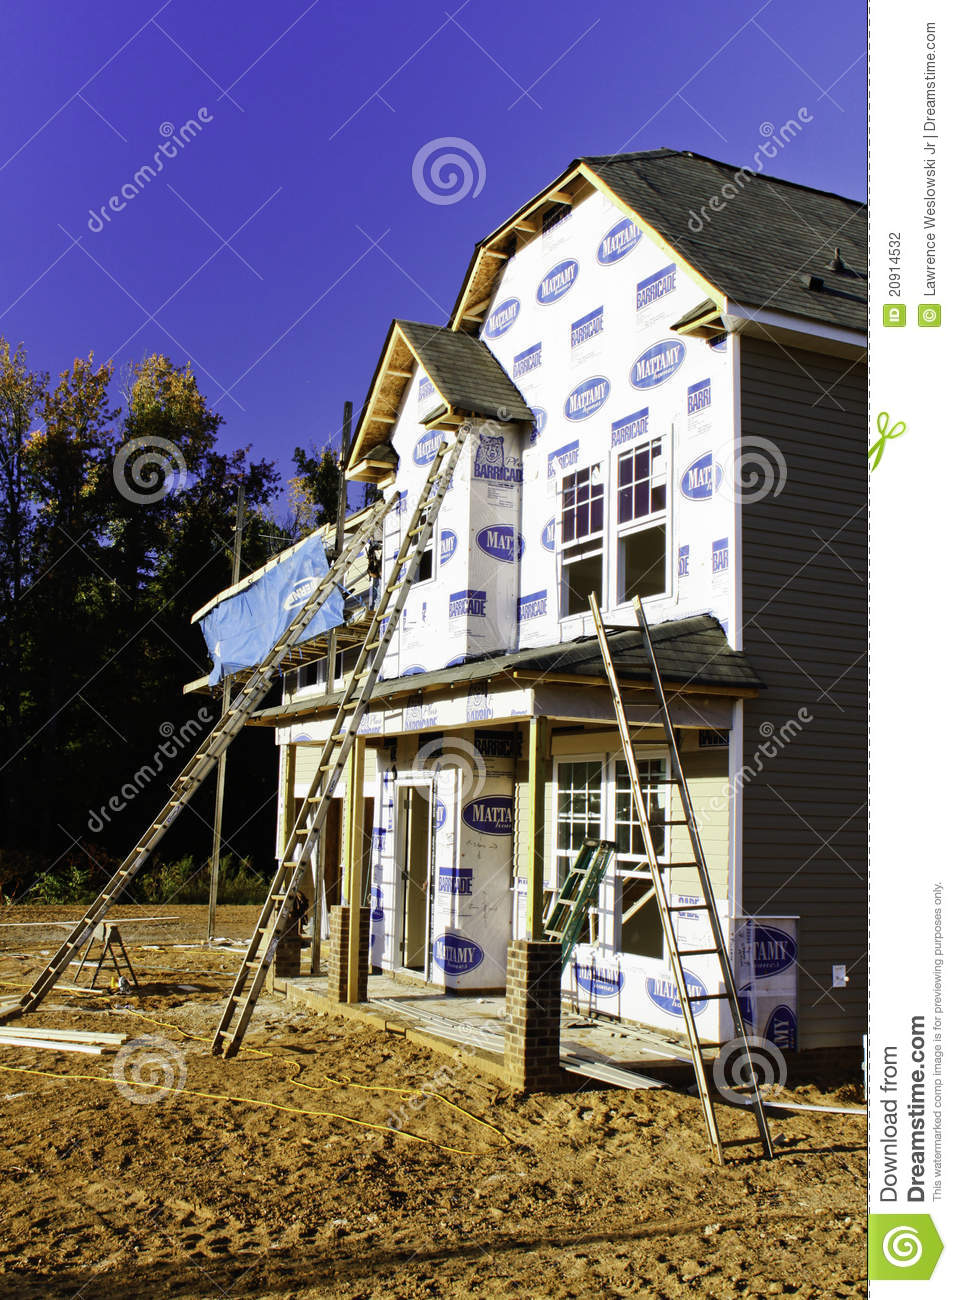 New home construction ladders and windows editorial for Windows for new construction